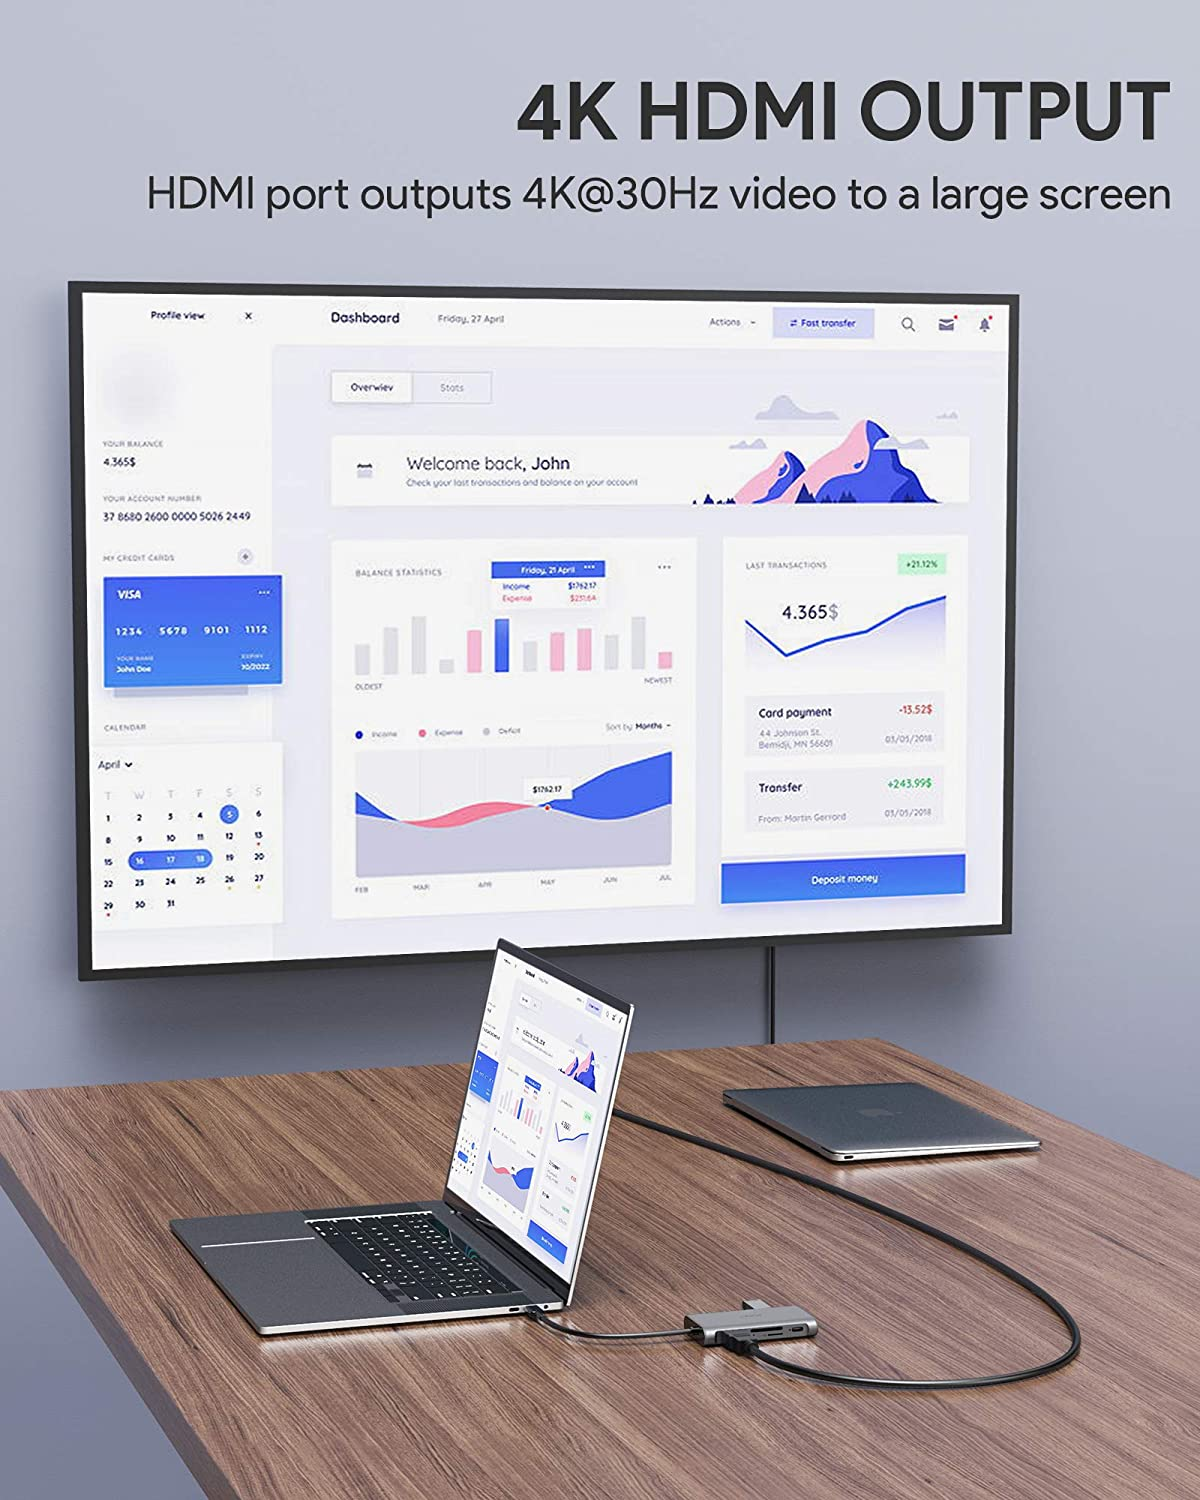 Gigabit Ethernet HP Dell 100W PD Charging and SD/&Micro SD Card Reader USB C Adapter Aluminum for MacBook Pro//Air 3 USB 3.0 Thunderbolt 3 AUKEY USB C Hub 8-in-1 with 4K HDMI